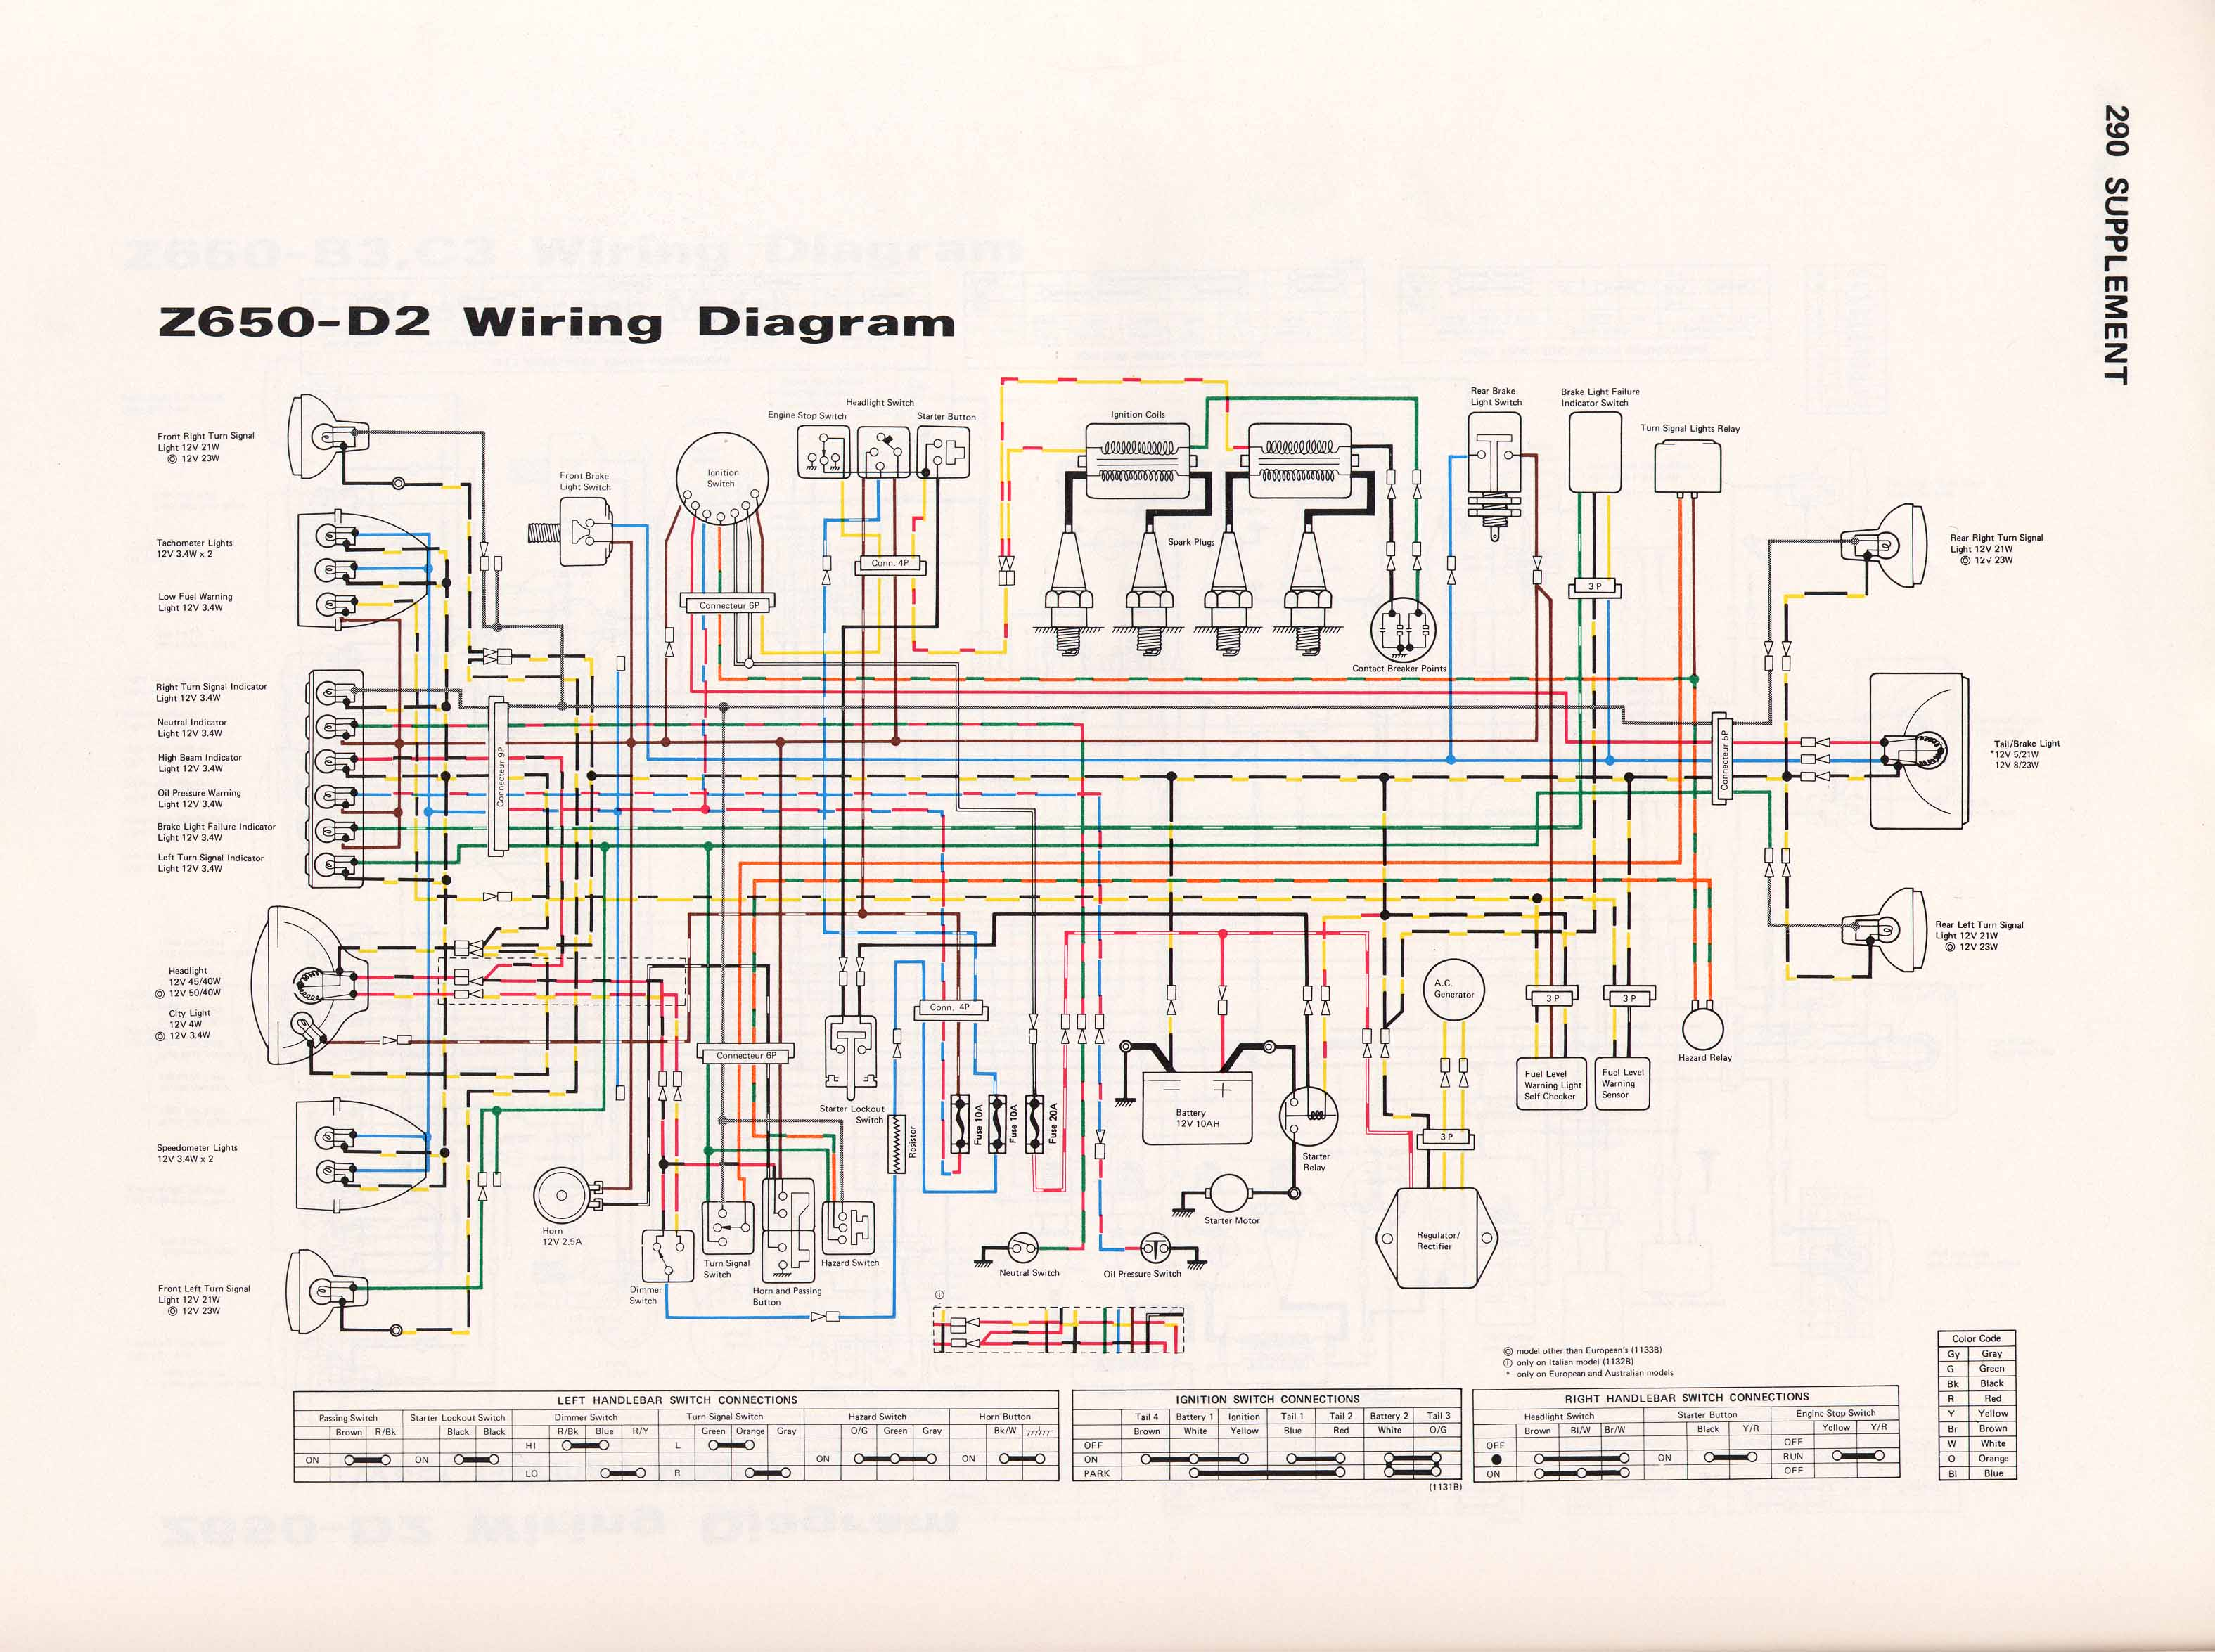 Yamaha Virago 750 Owners Manual Pdf Xv535 Wiring Diagram